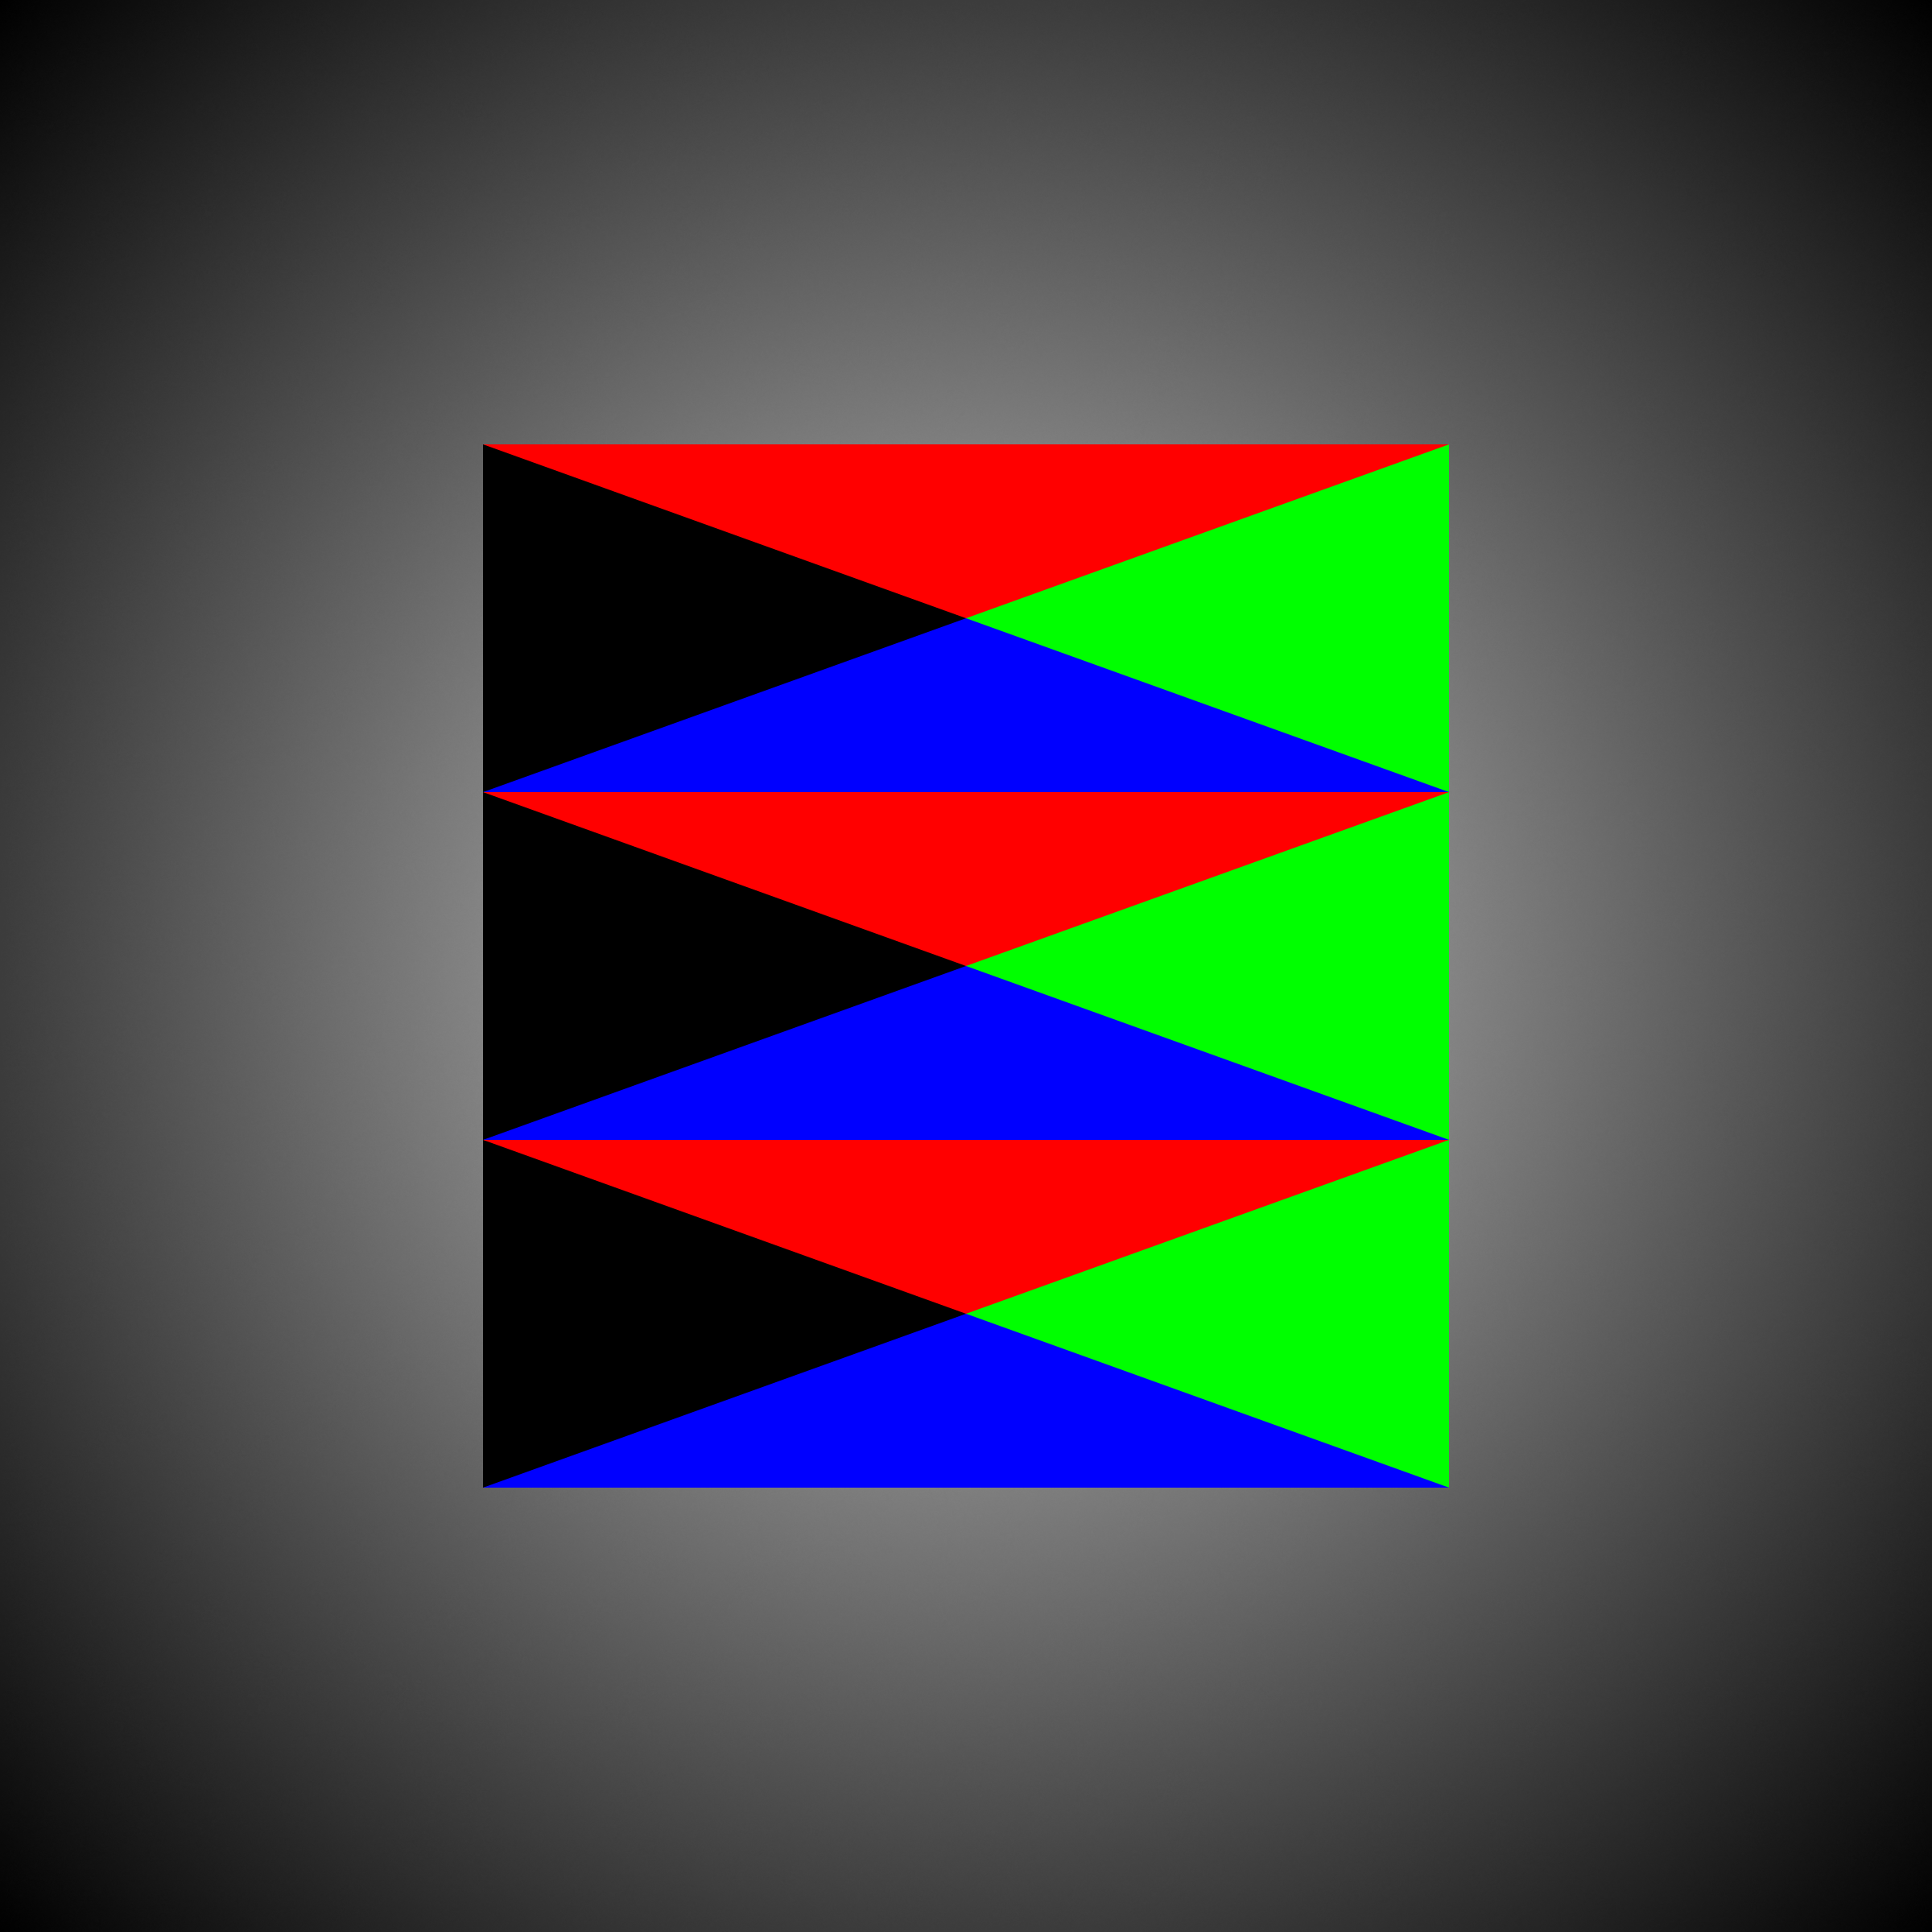 rotating squares 2 (animated) by Lazur URH